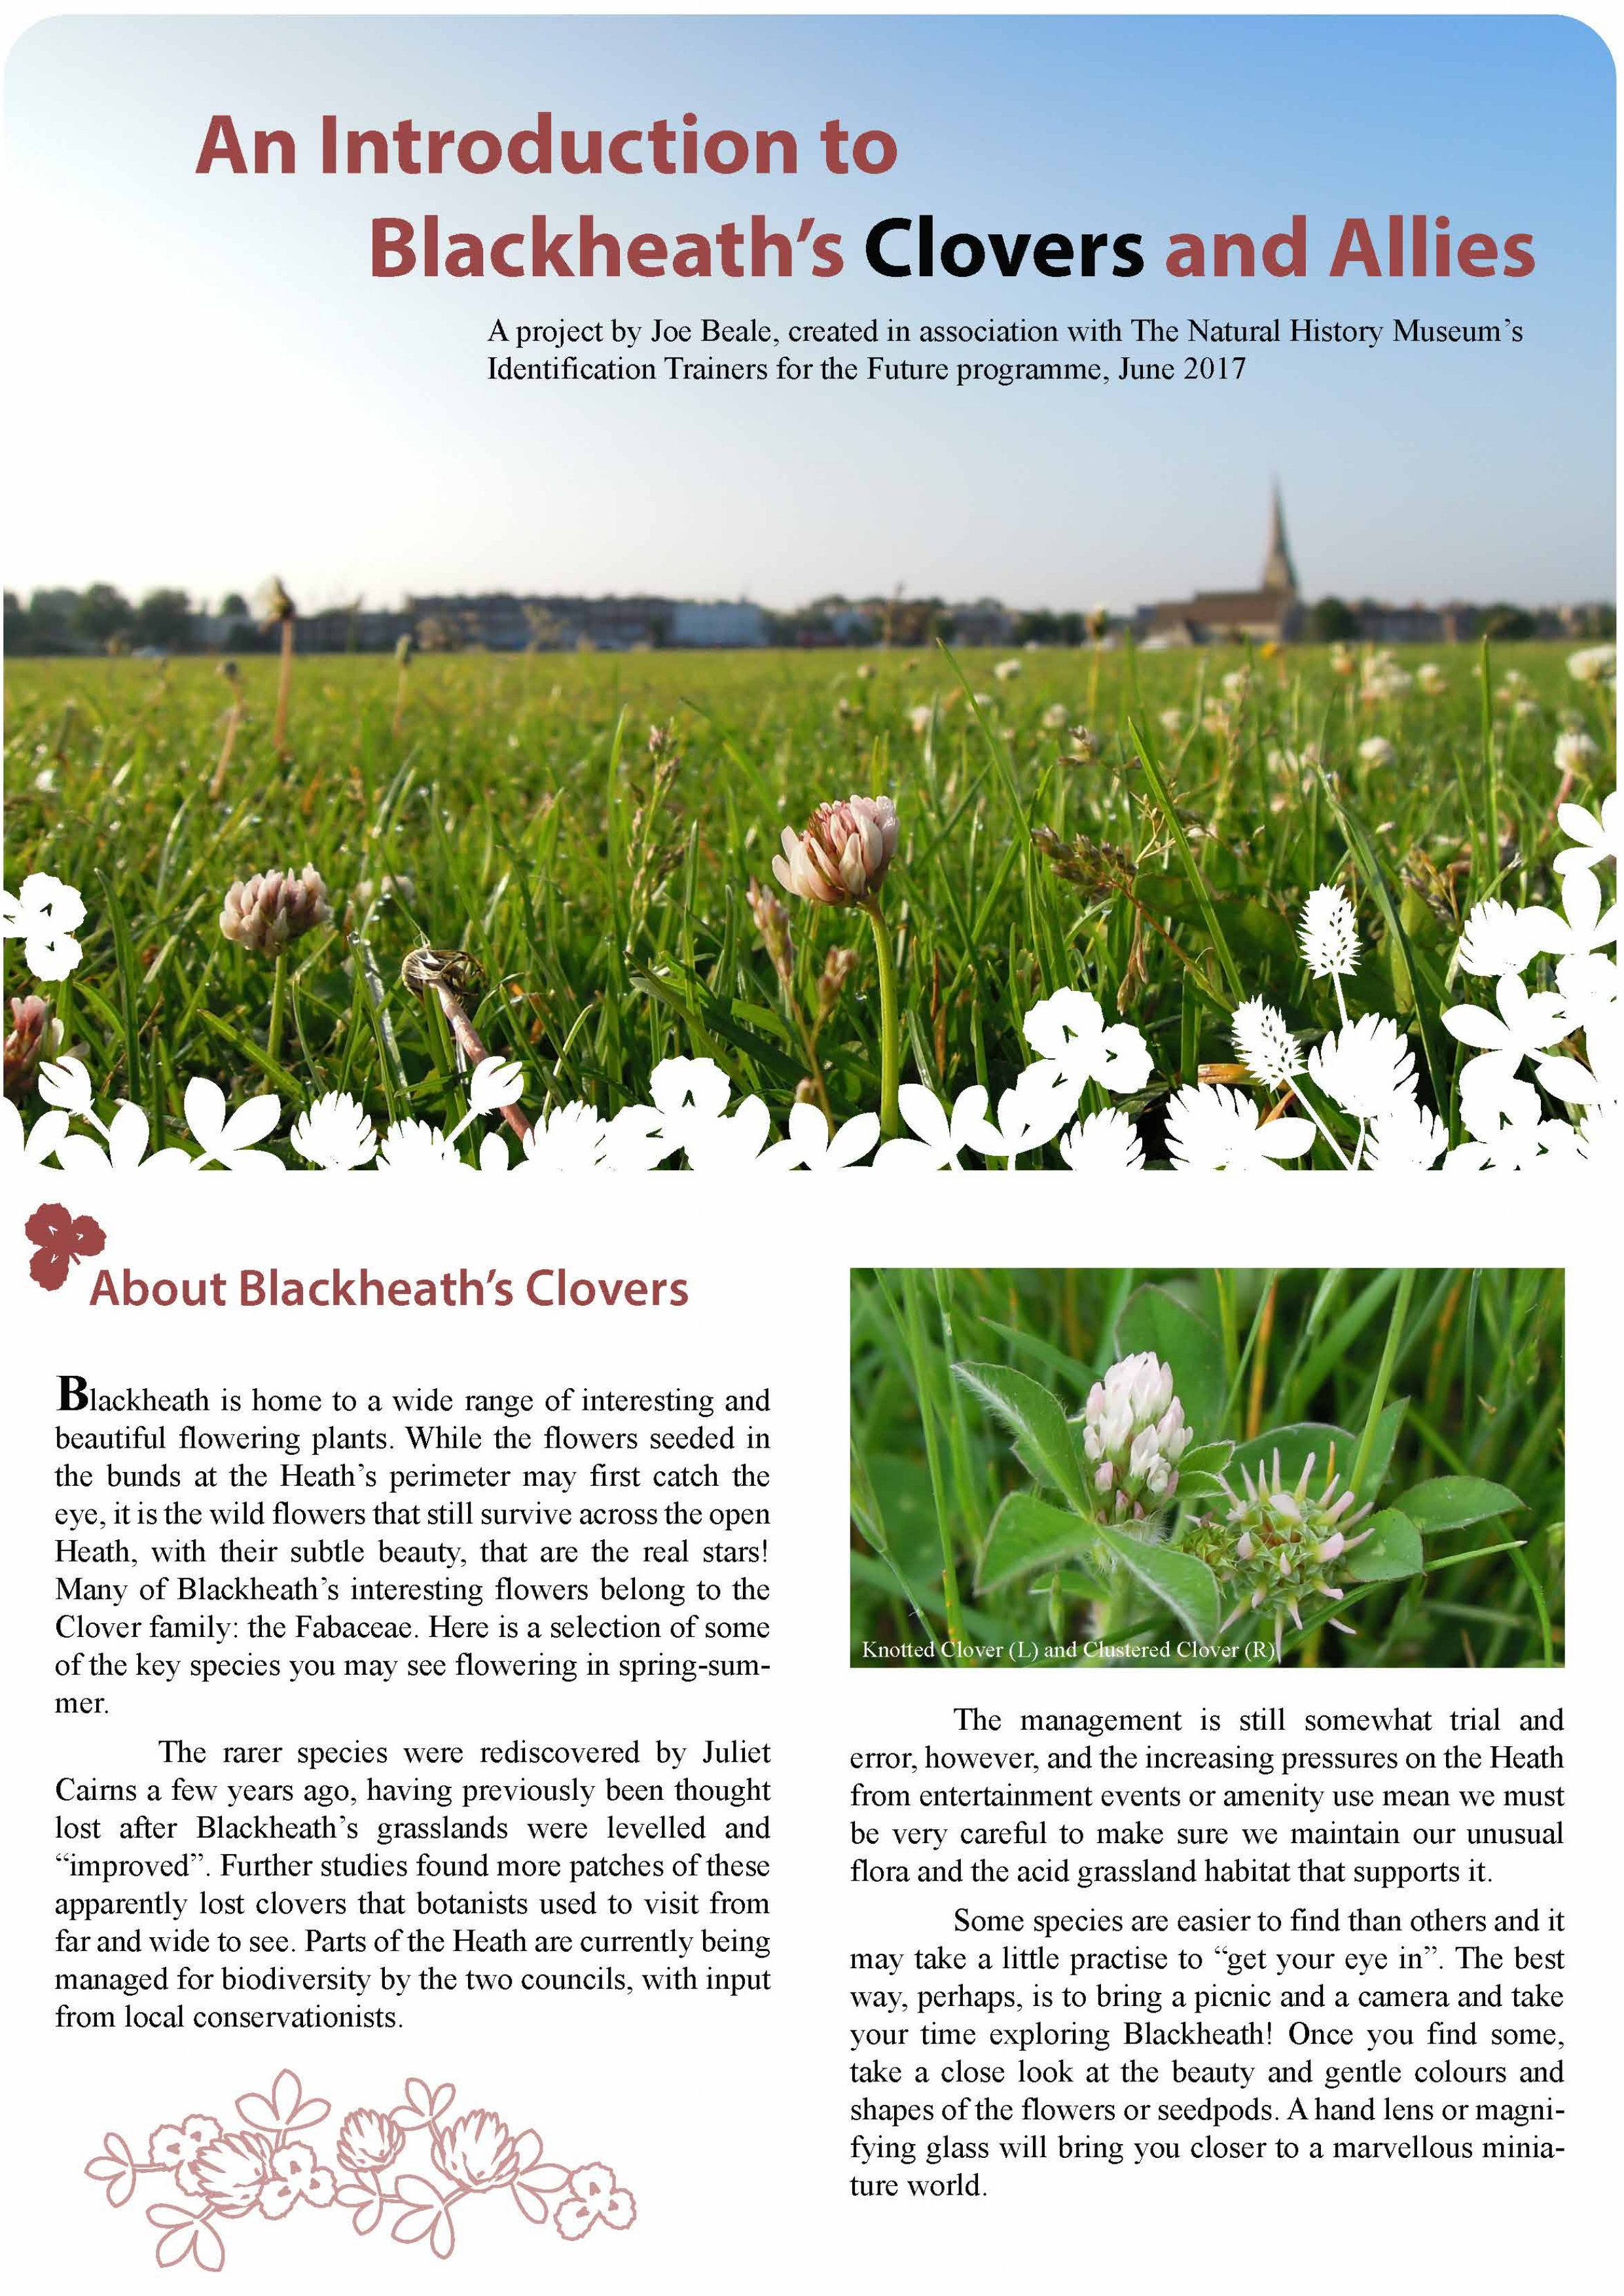 An Introduction to Blackheaths Clovers and Allies Joe Beale 1.jpg